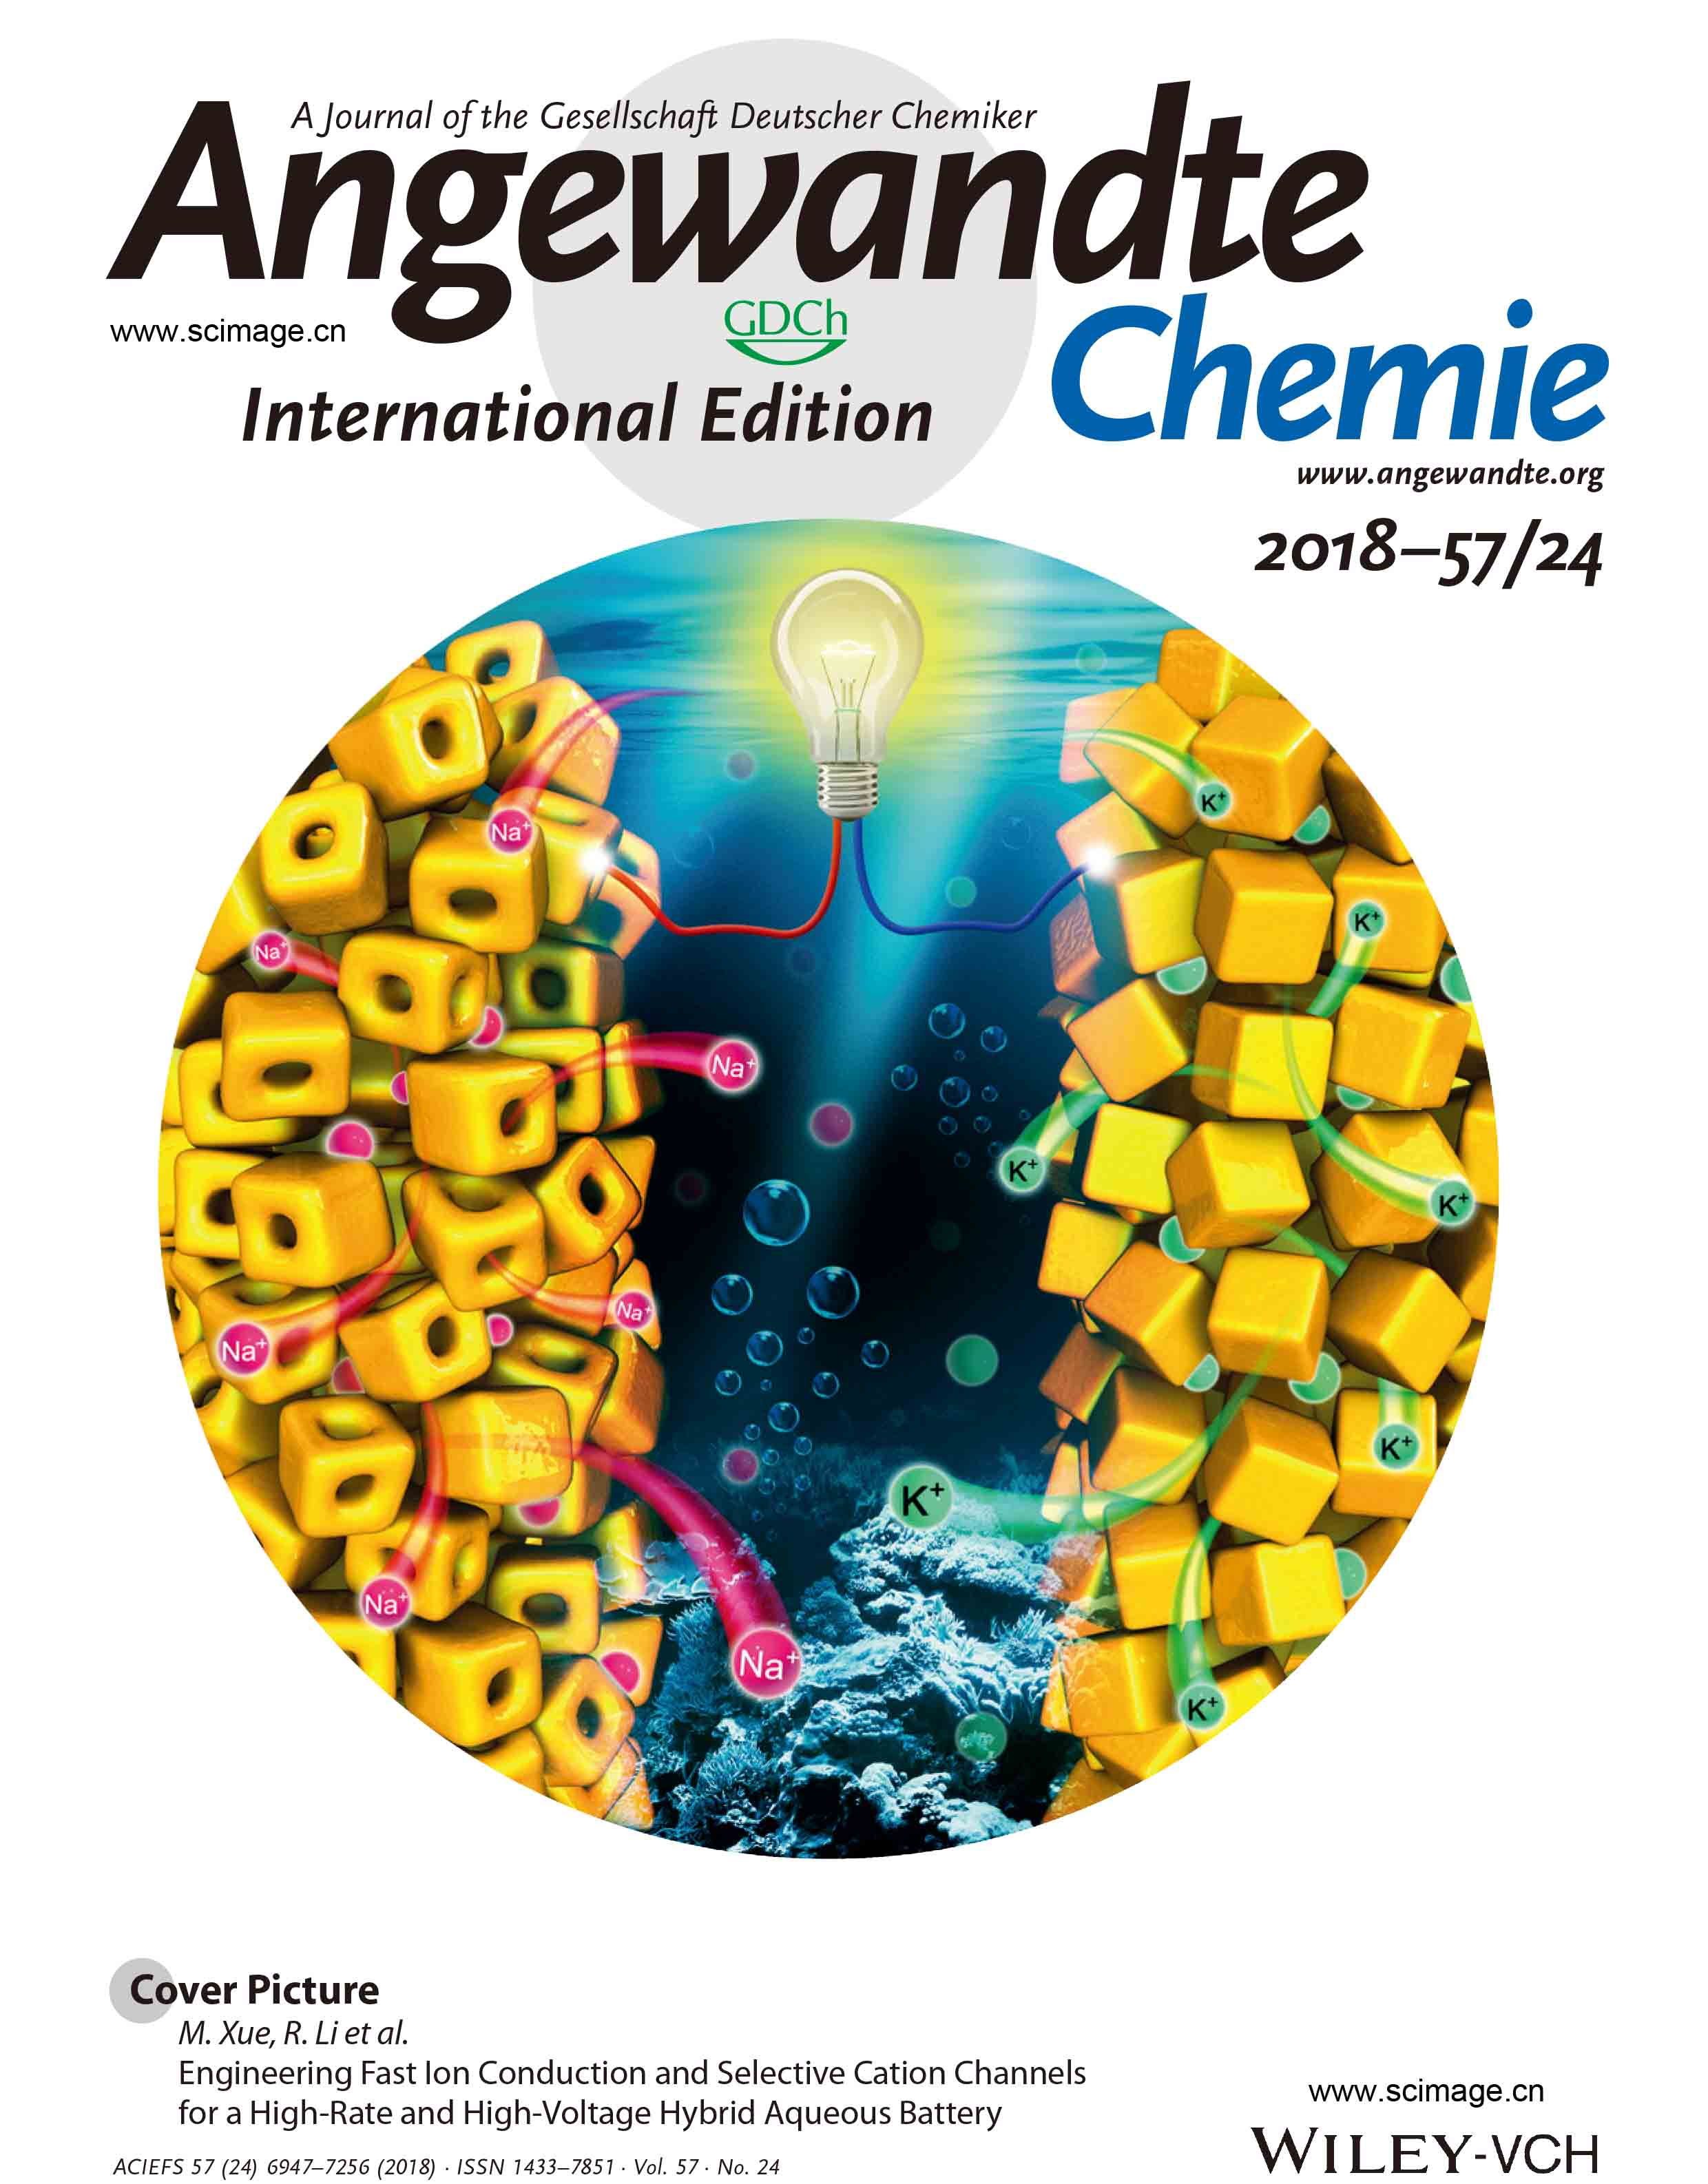 Engineering Fast Ion Conduction and Selective Cation Channels for a High‐Rate and High‐Voltage Hybrid Aqueous Battery